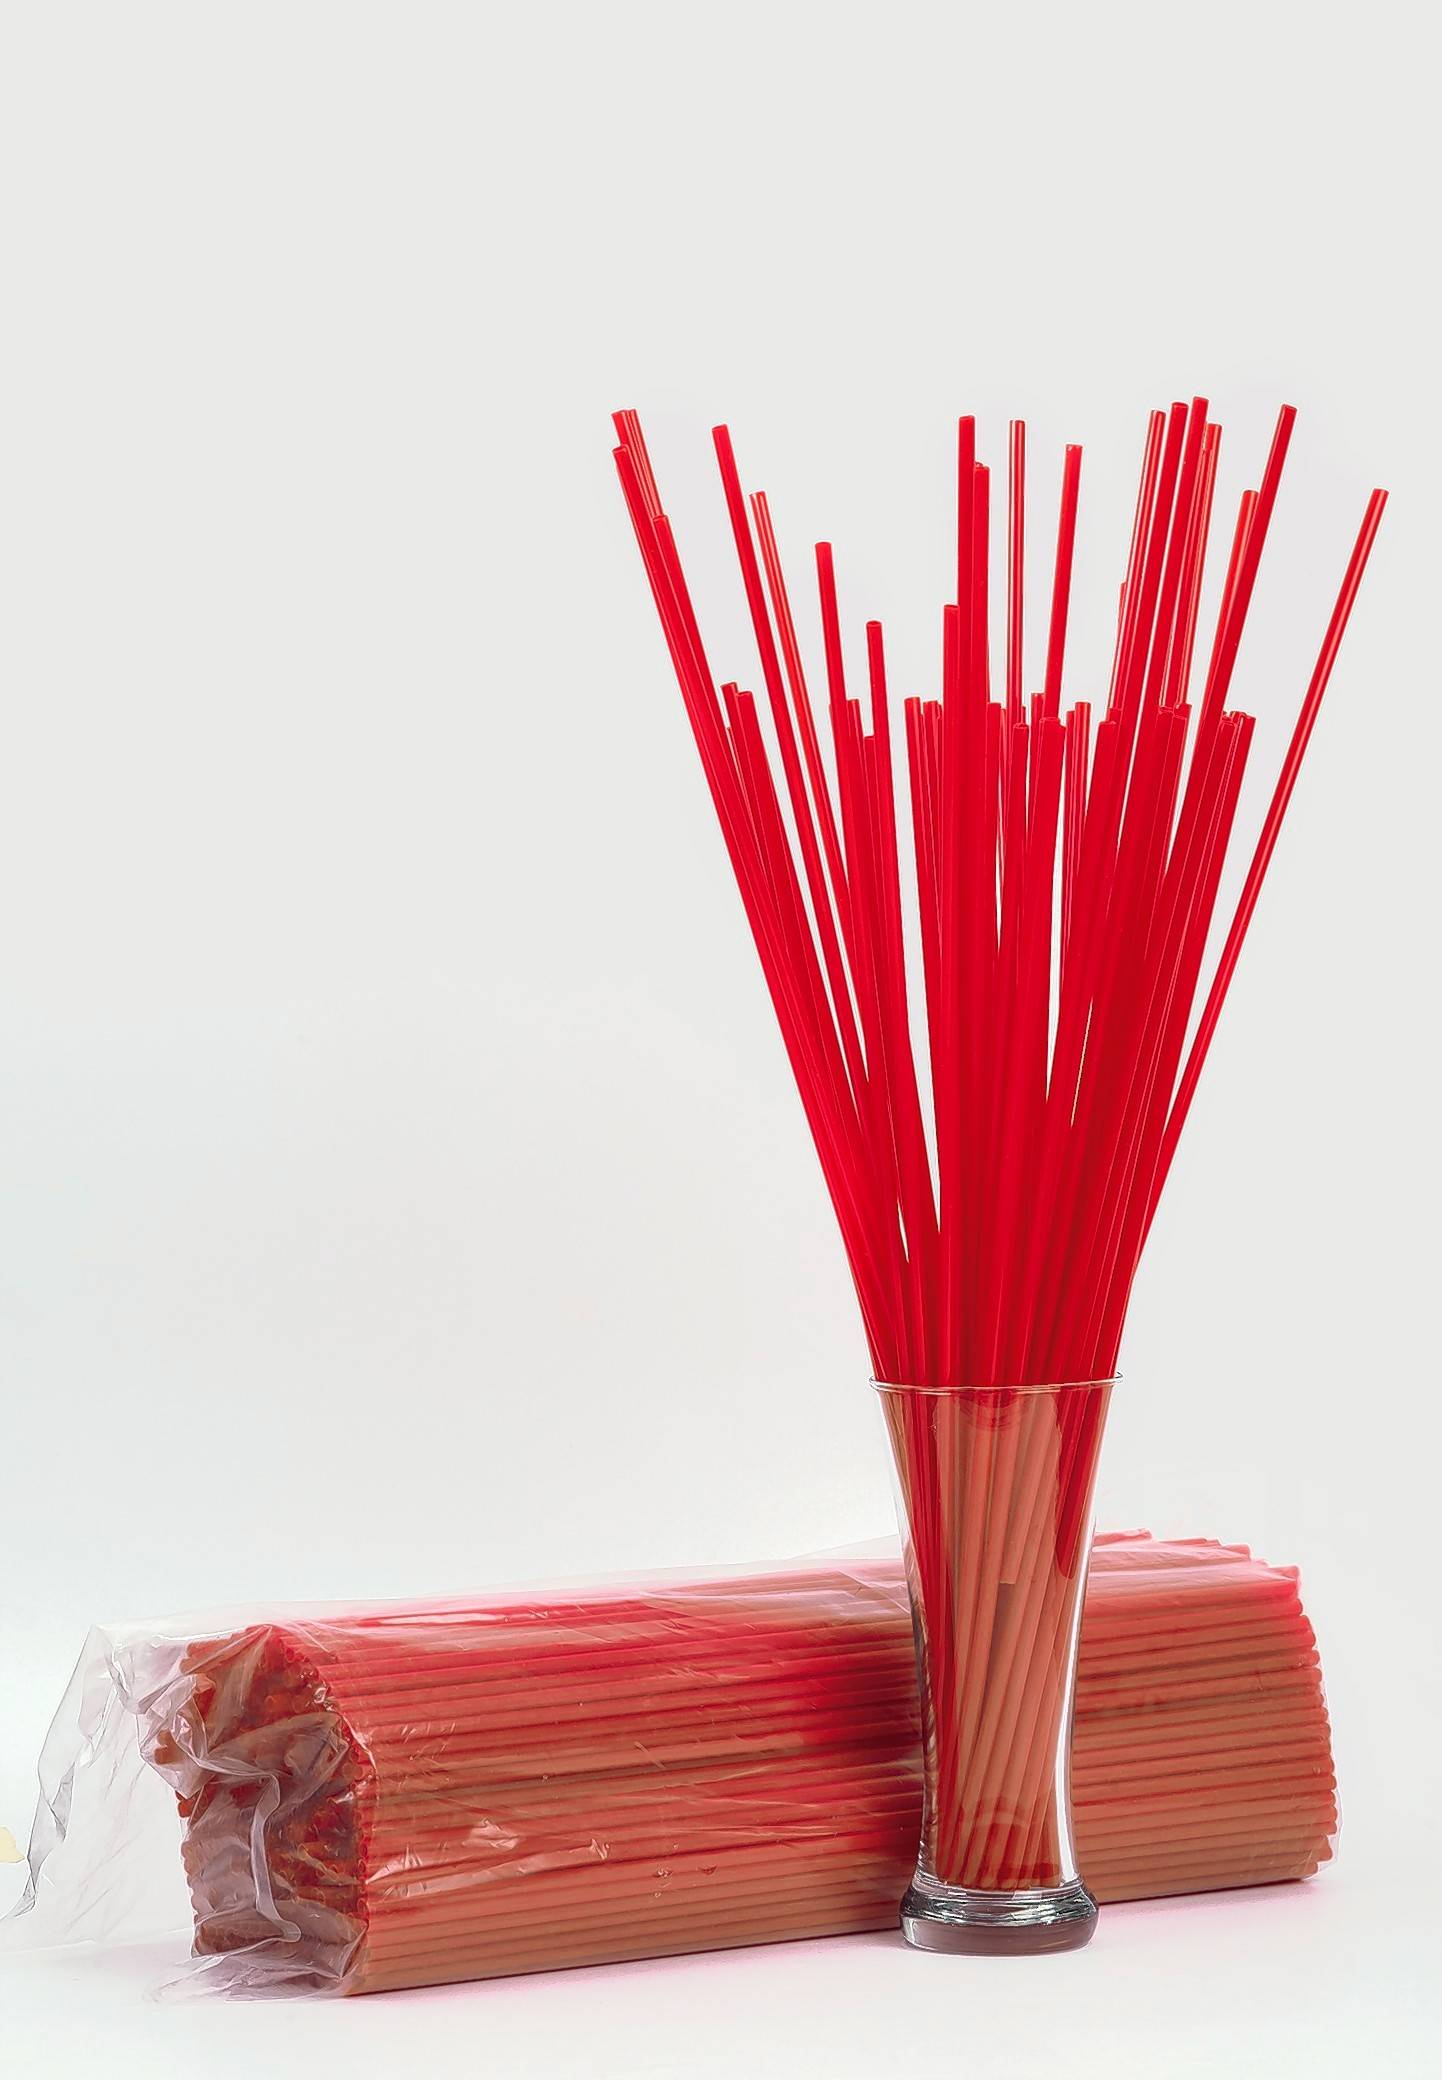 Using straws may cause more gas, bloating, wrinkles and cavities.